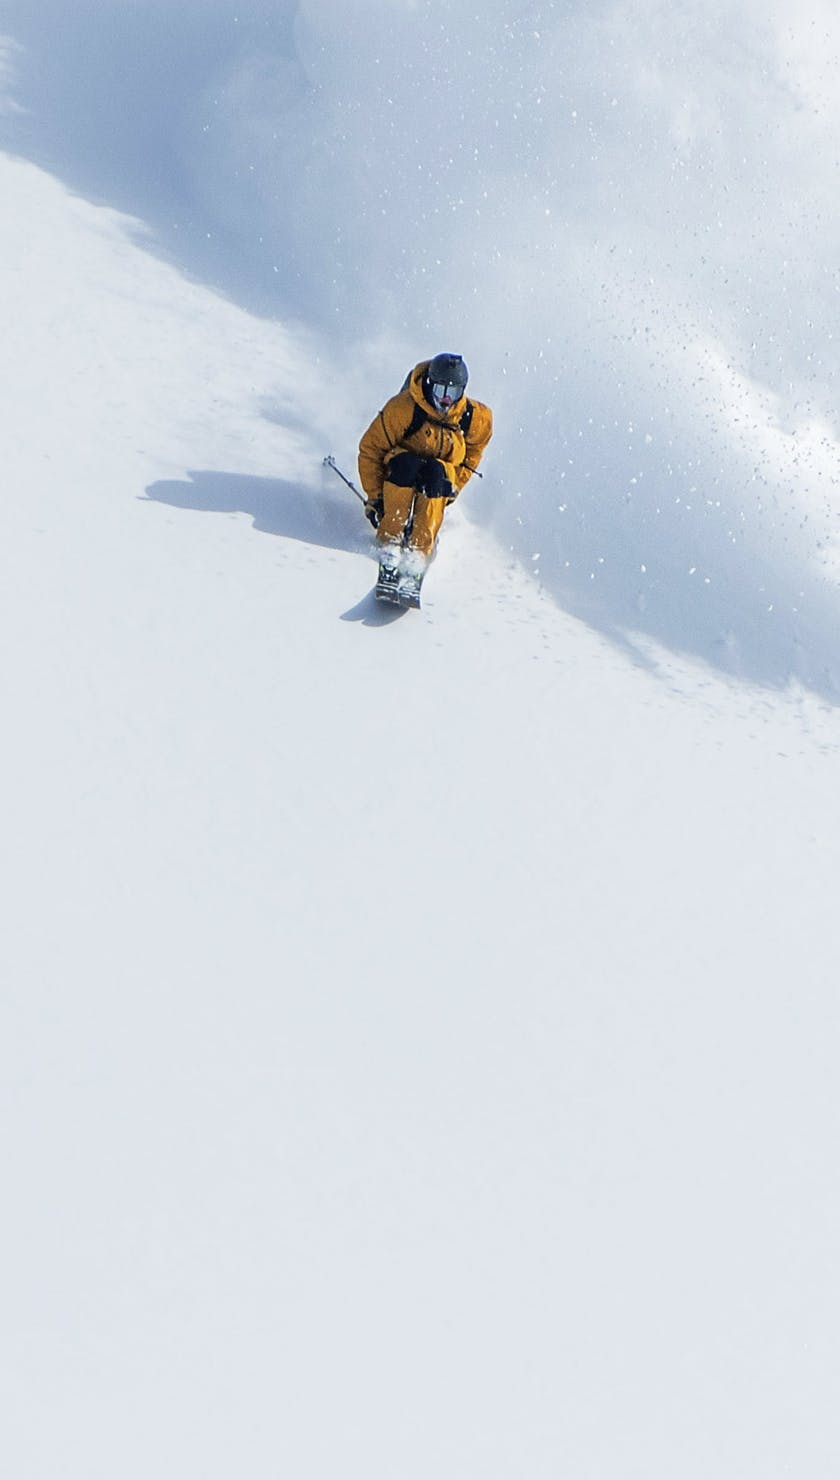 BD Athlet Parkin Costain skiing Backcountry